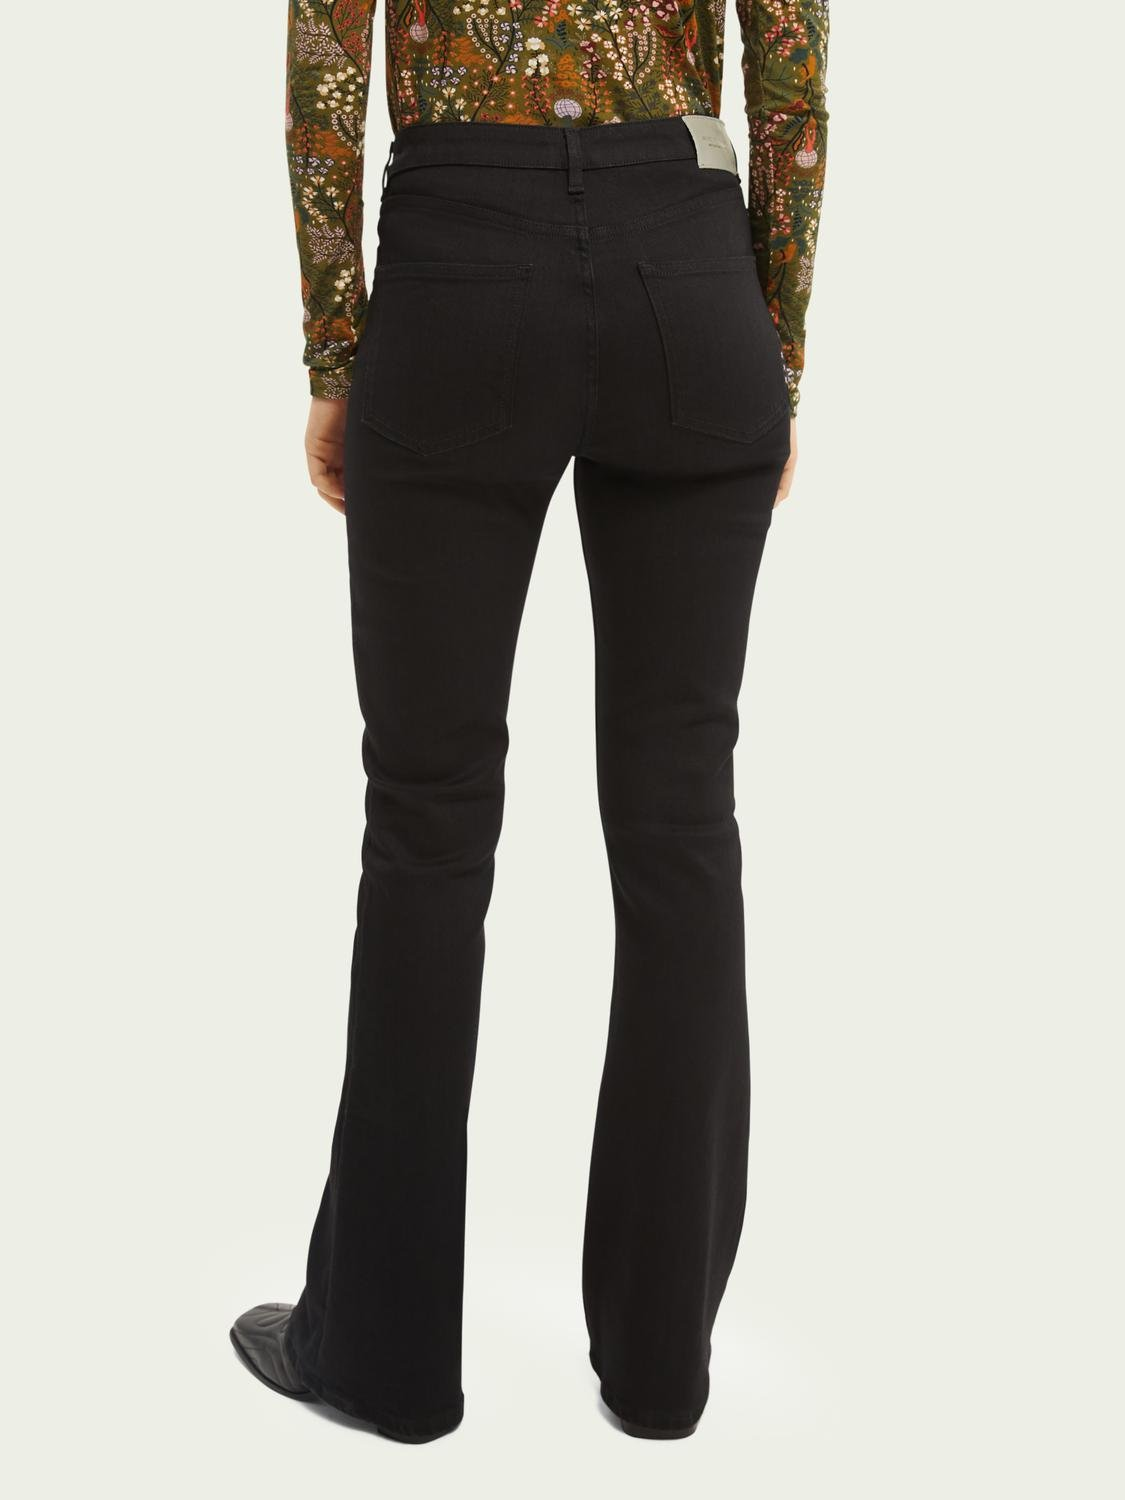 The Charm high-rise flared jeans —Think Different 2